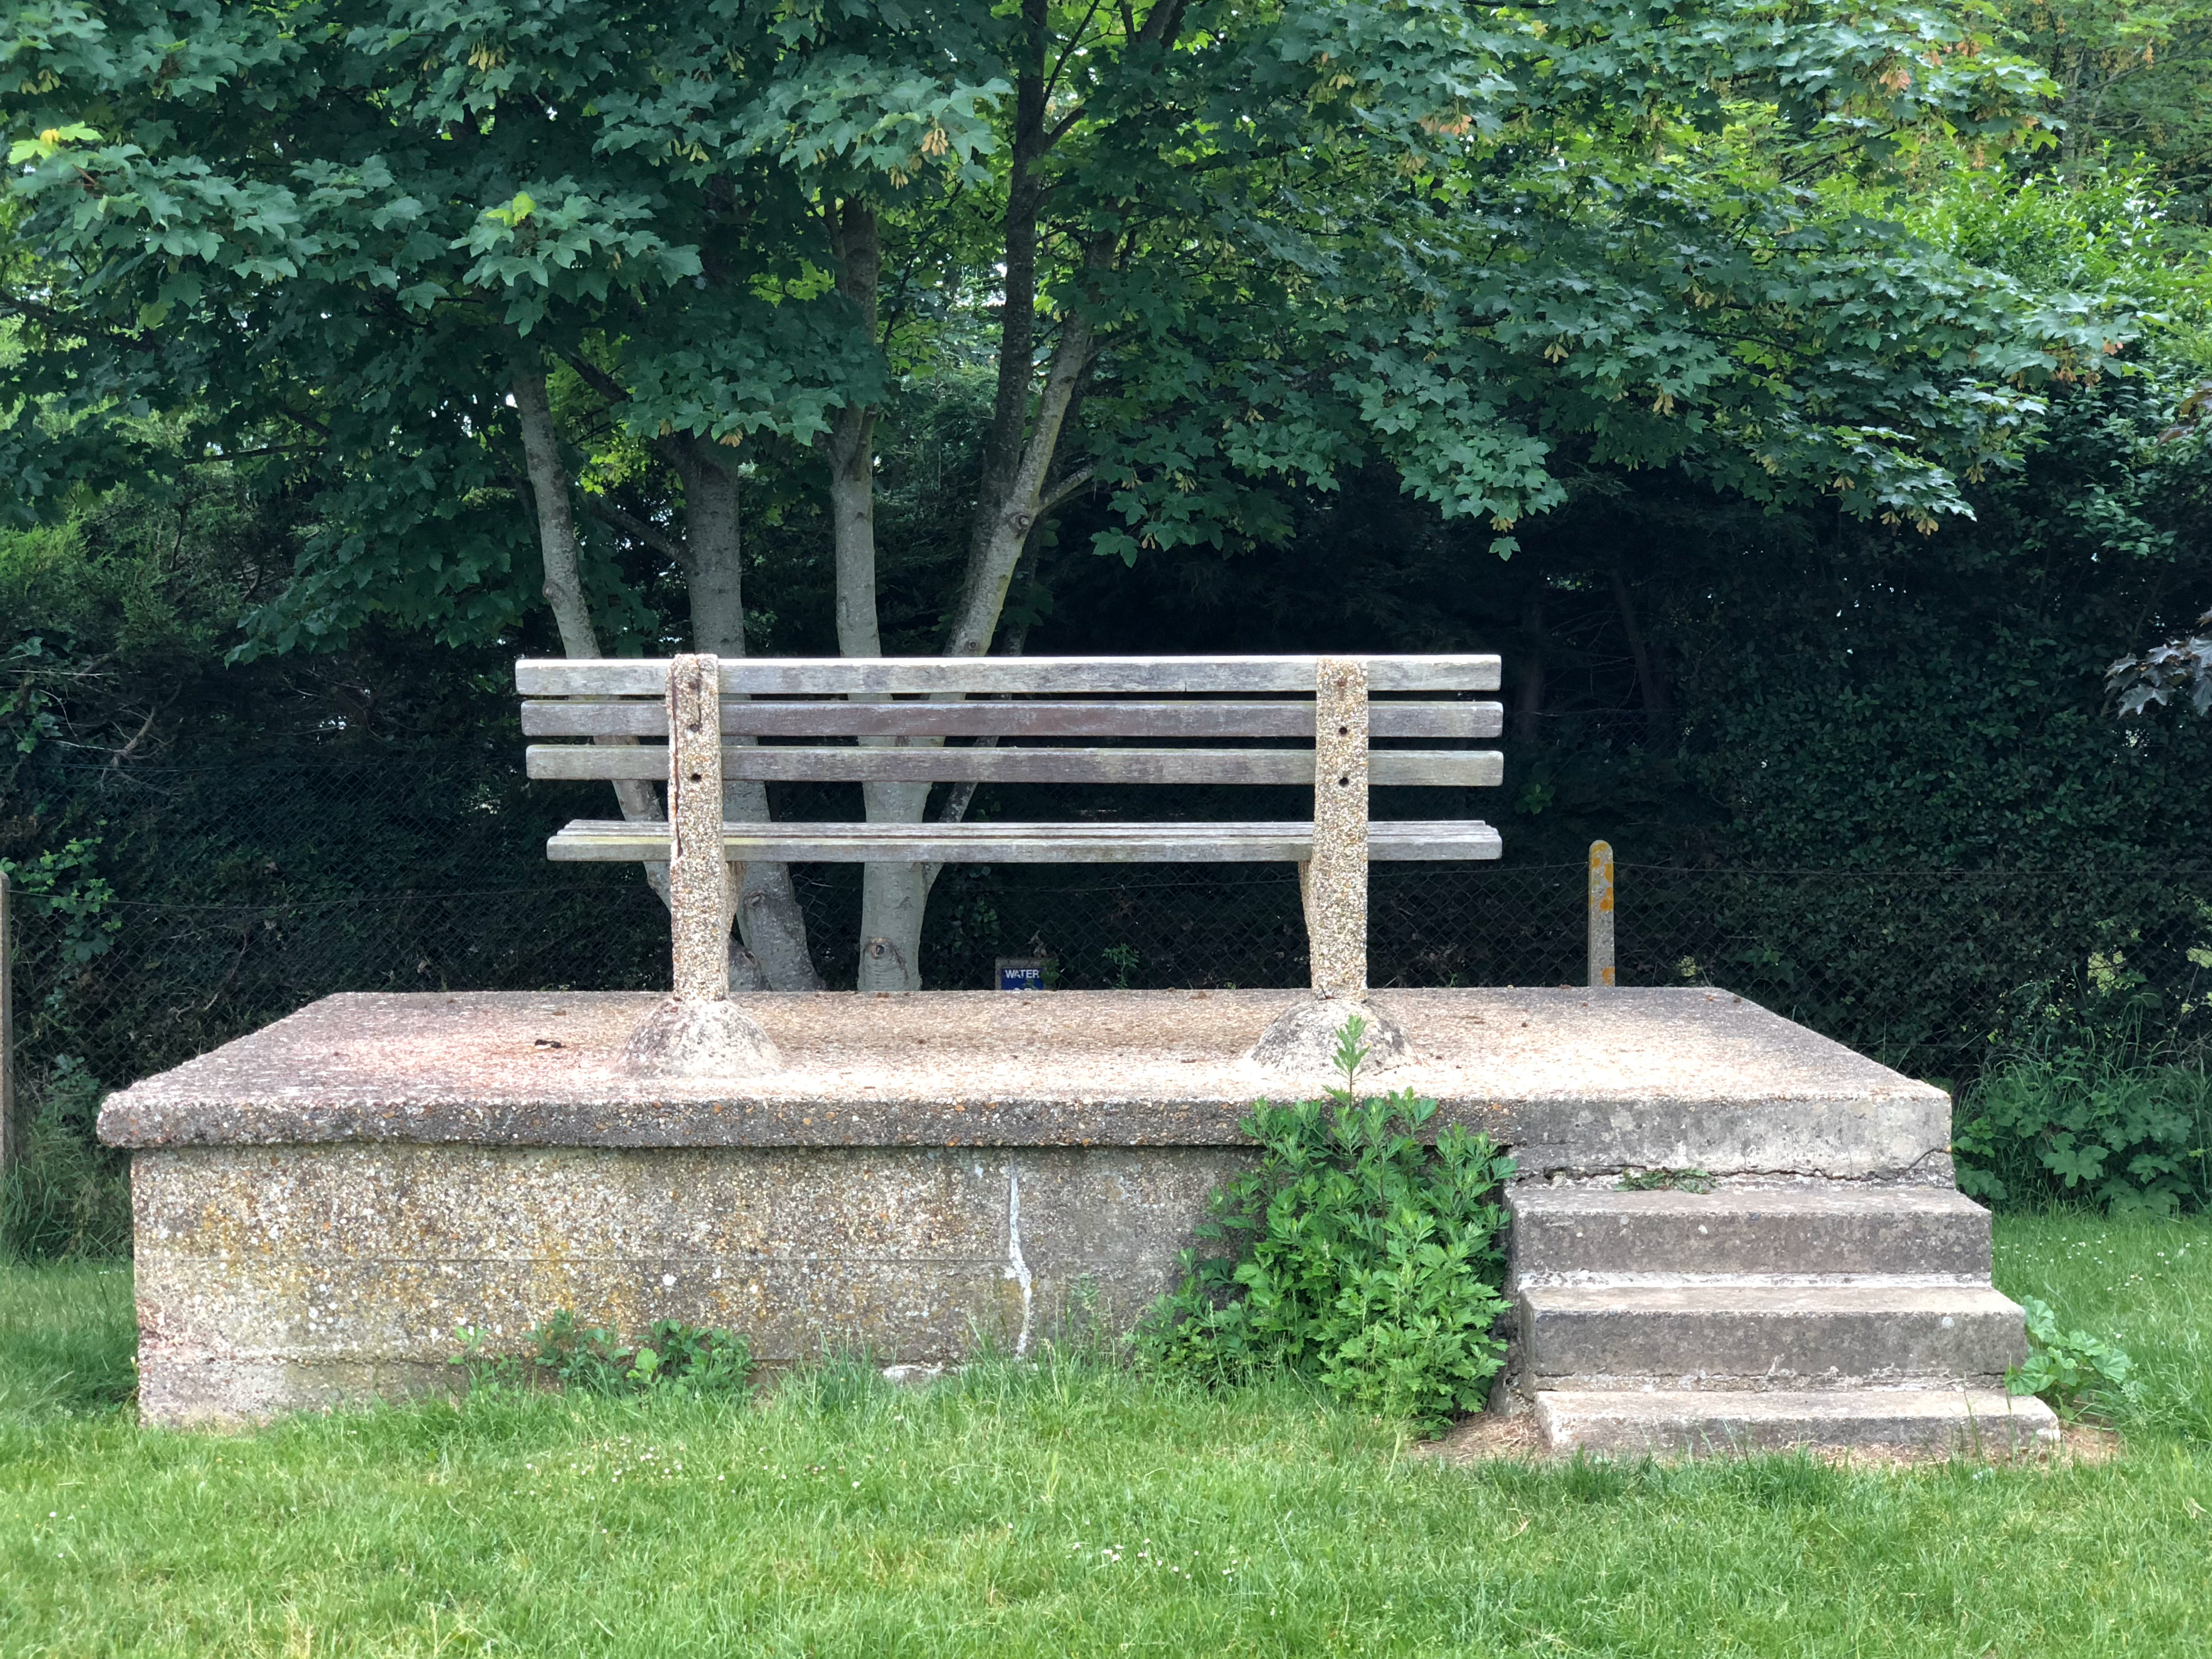 A concrete seat with wooden seat and back planks elevated on a concrete plinth, with steps, faces a medium sized tree just in front of the seating position, with an overgrown hedgerow just beyond behind a chain link fence. The seated position would give no more than a few feet of view